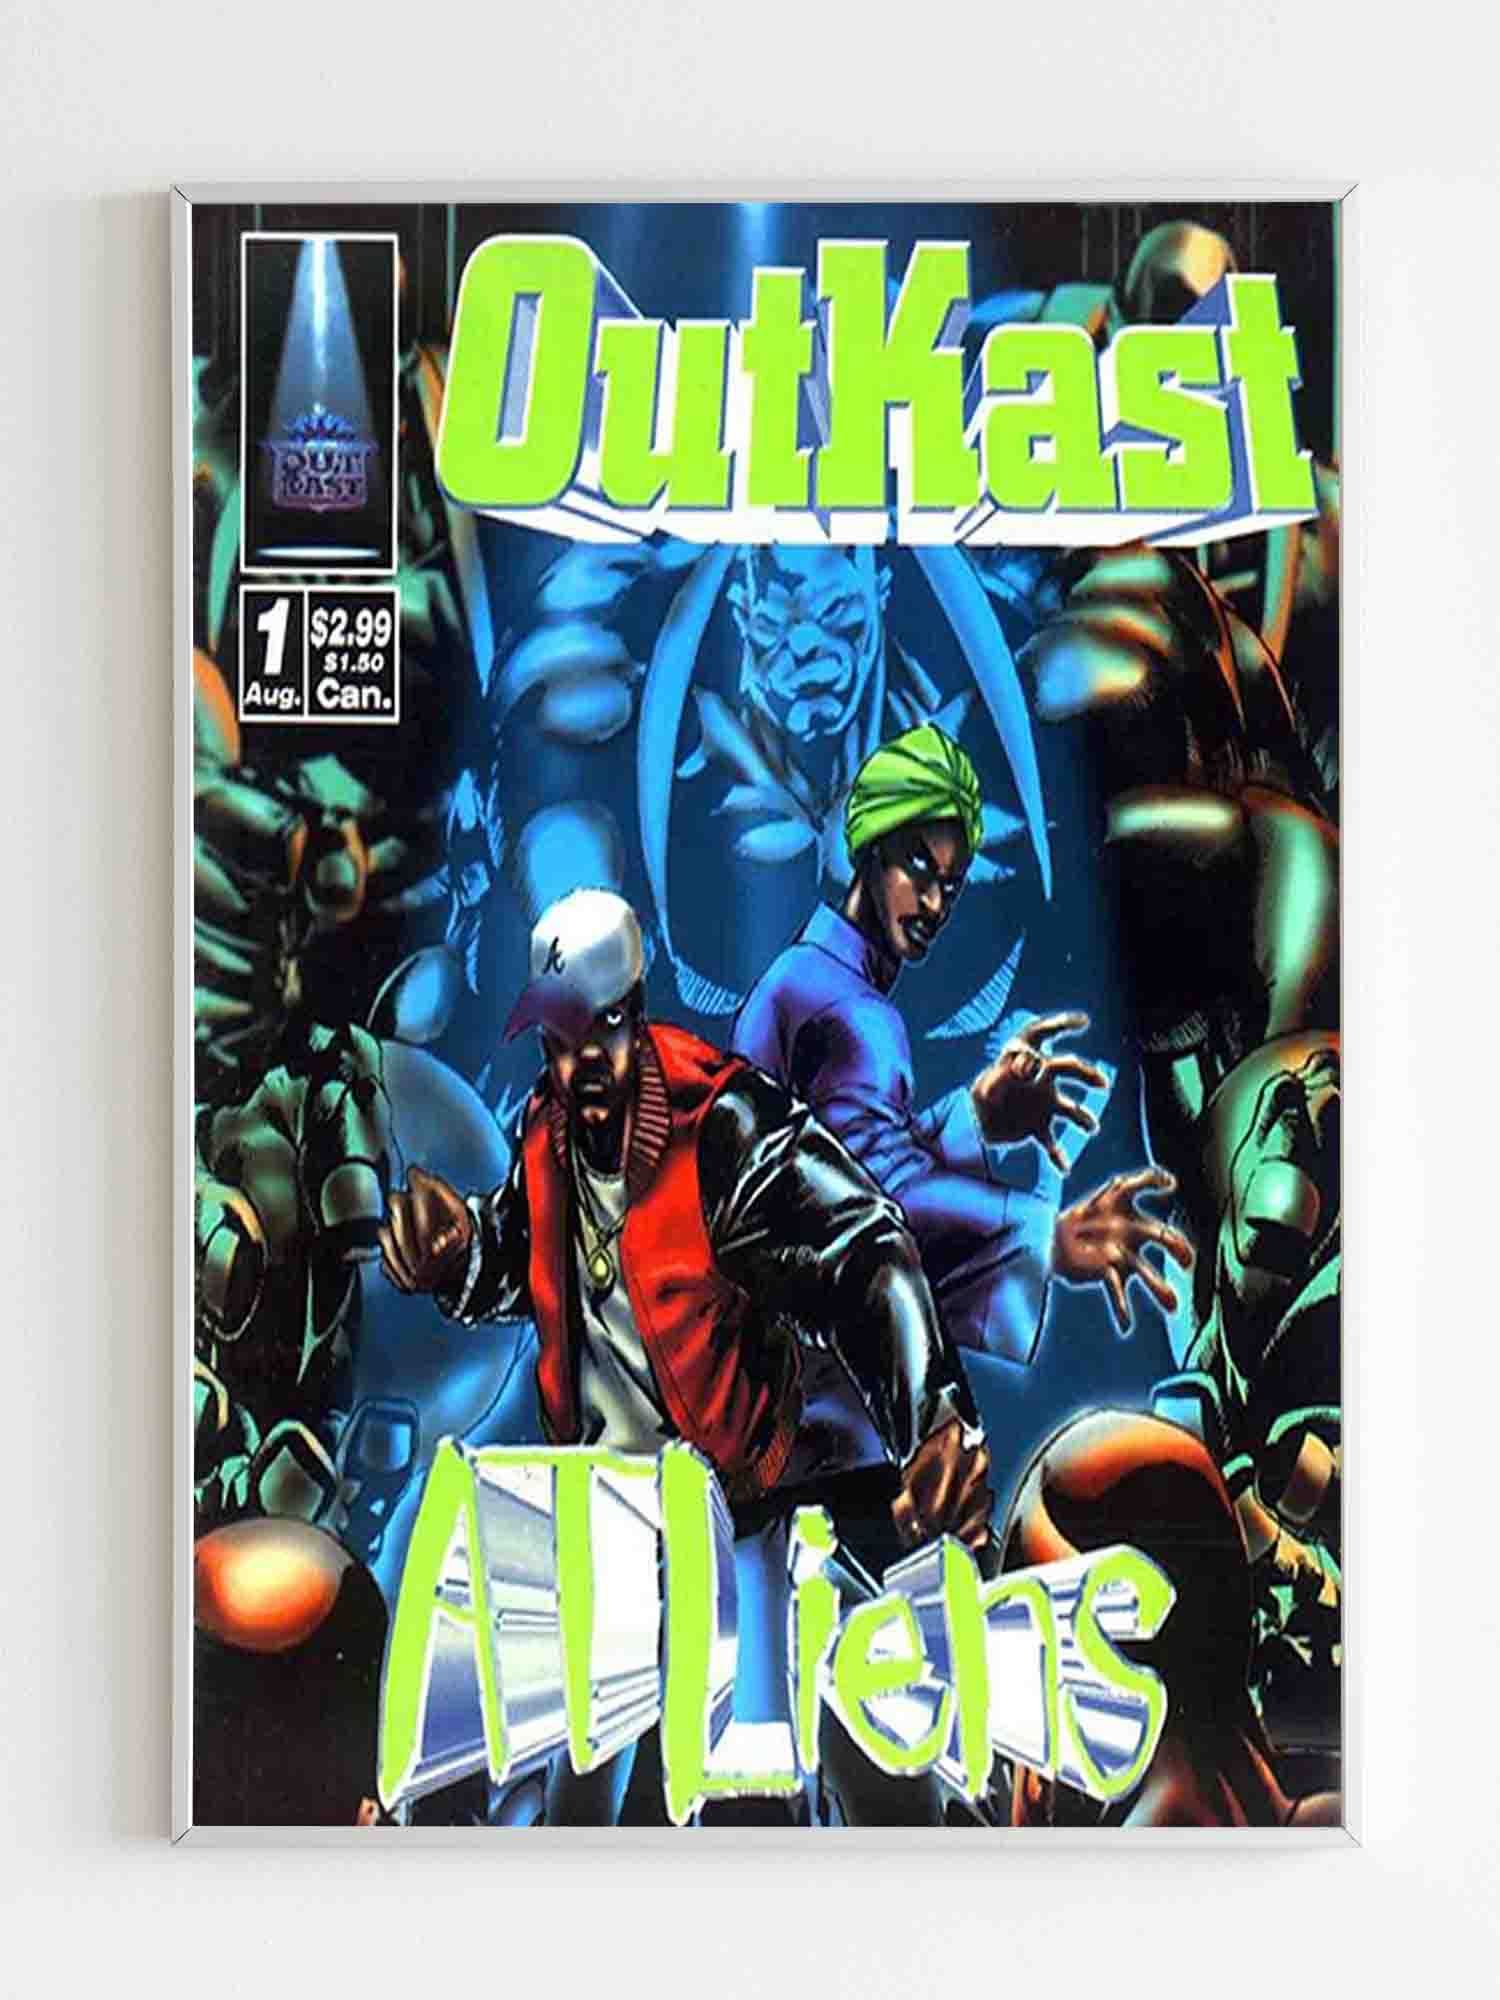 Outkast Atliens Sublimation Cover Poster